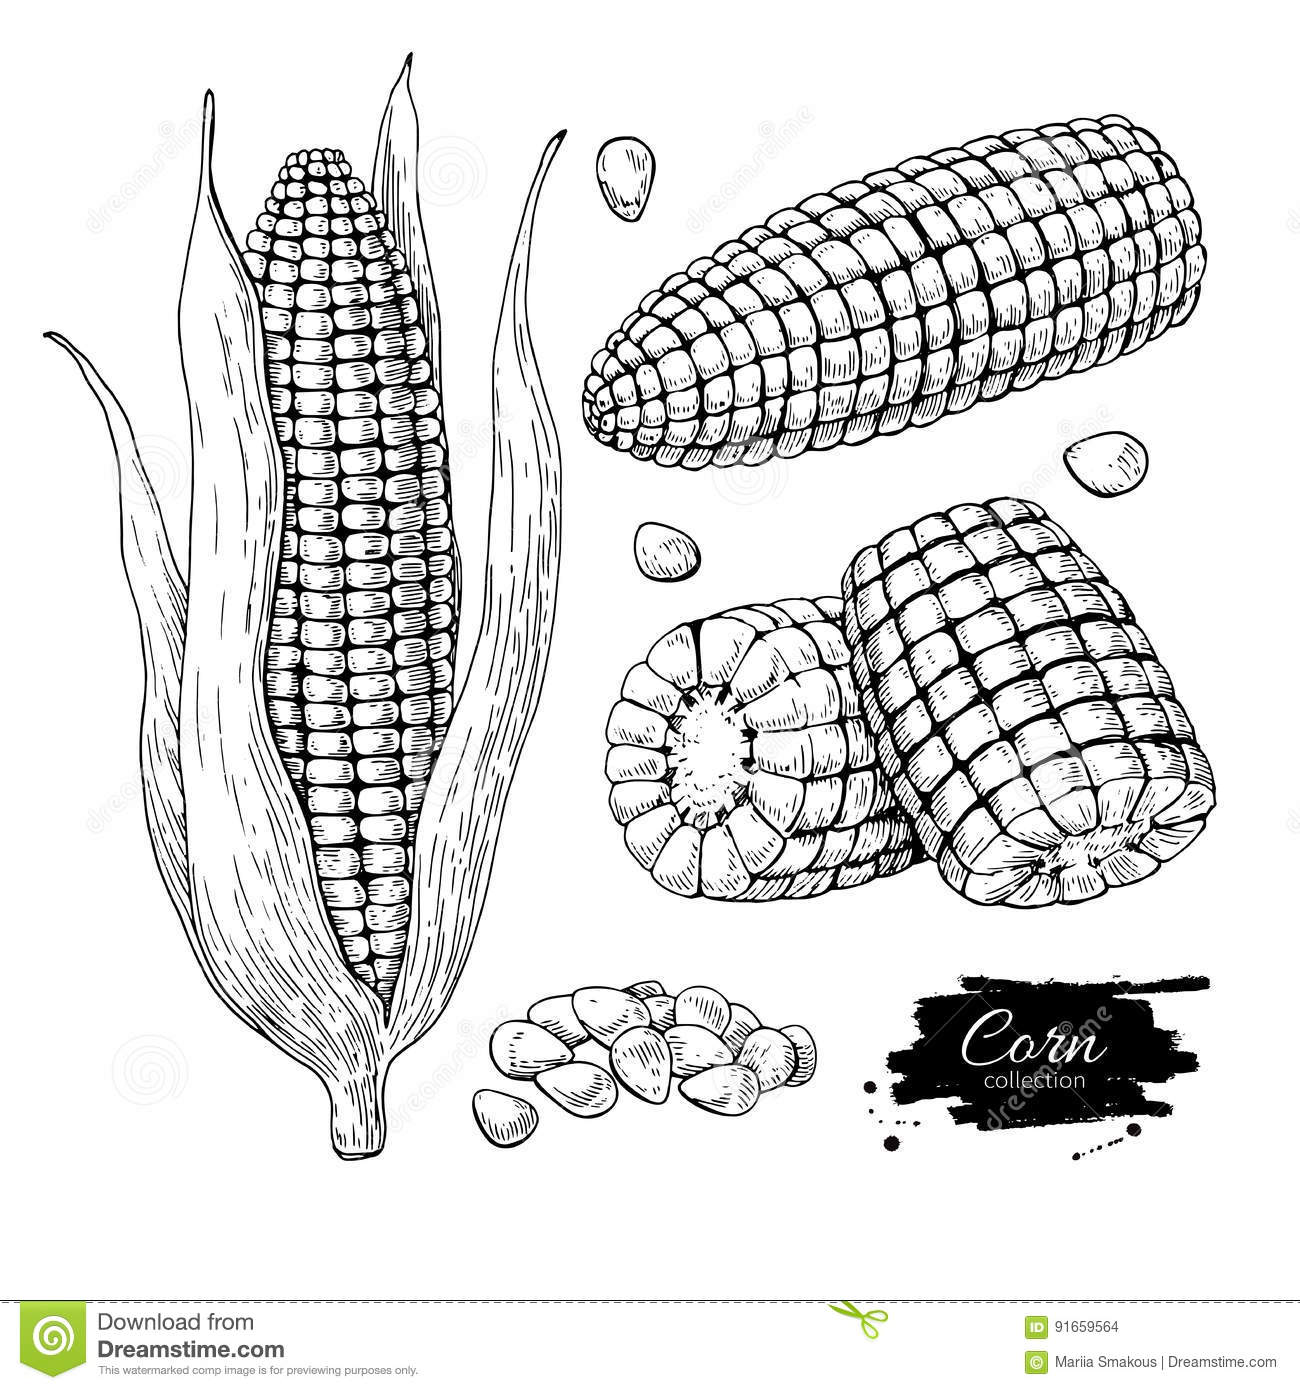 Corn Hand Drawn Vector Illustration Set Isolated Vegetable Engraved Style Object Detailed